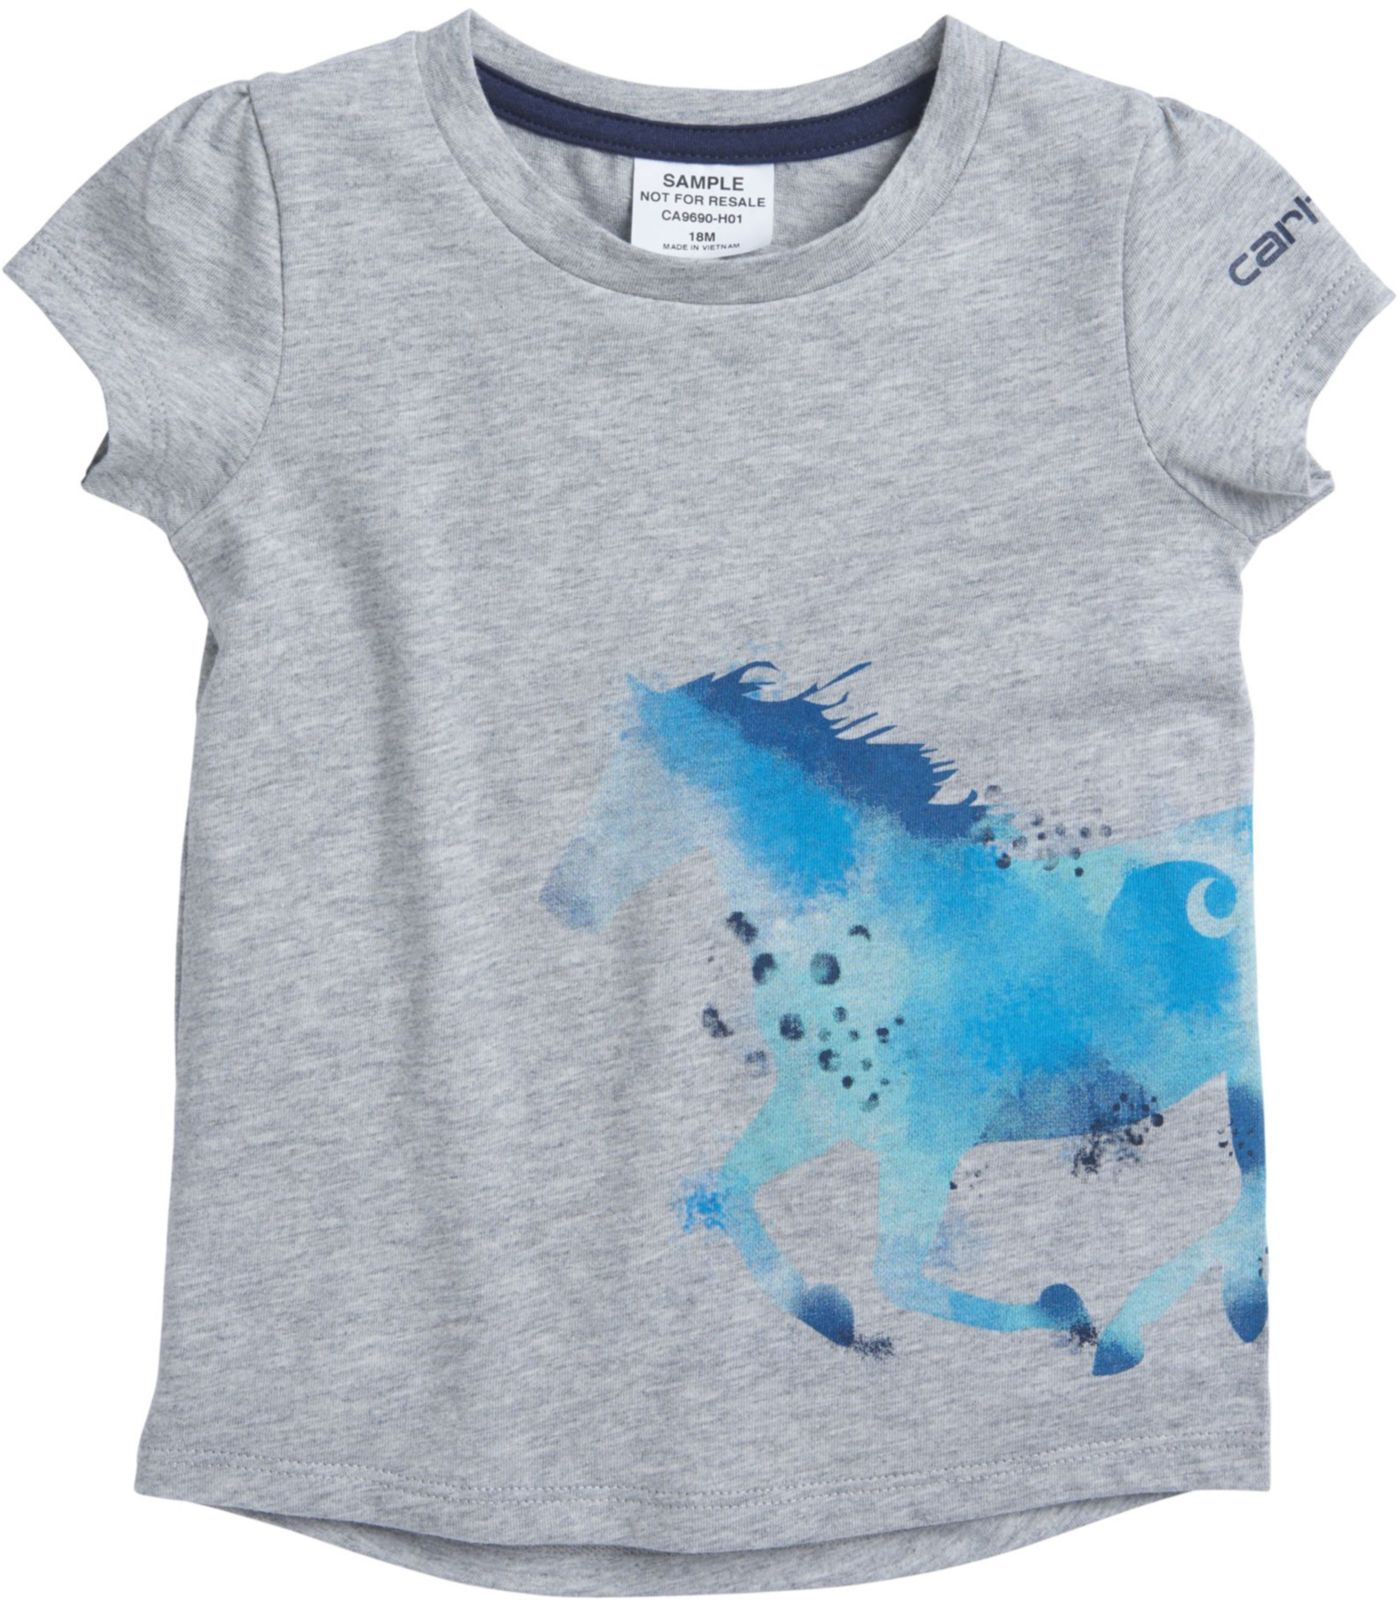 Carhartt Toddler Girls' Horse Wrap T-Shirt